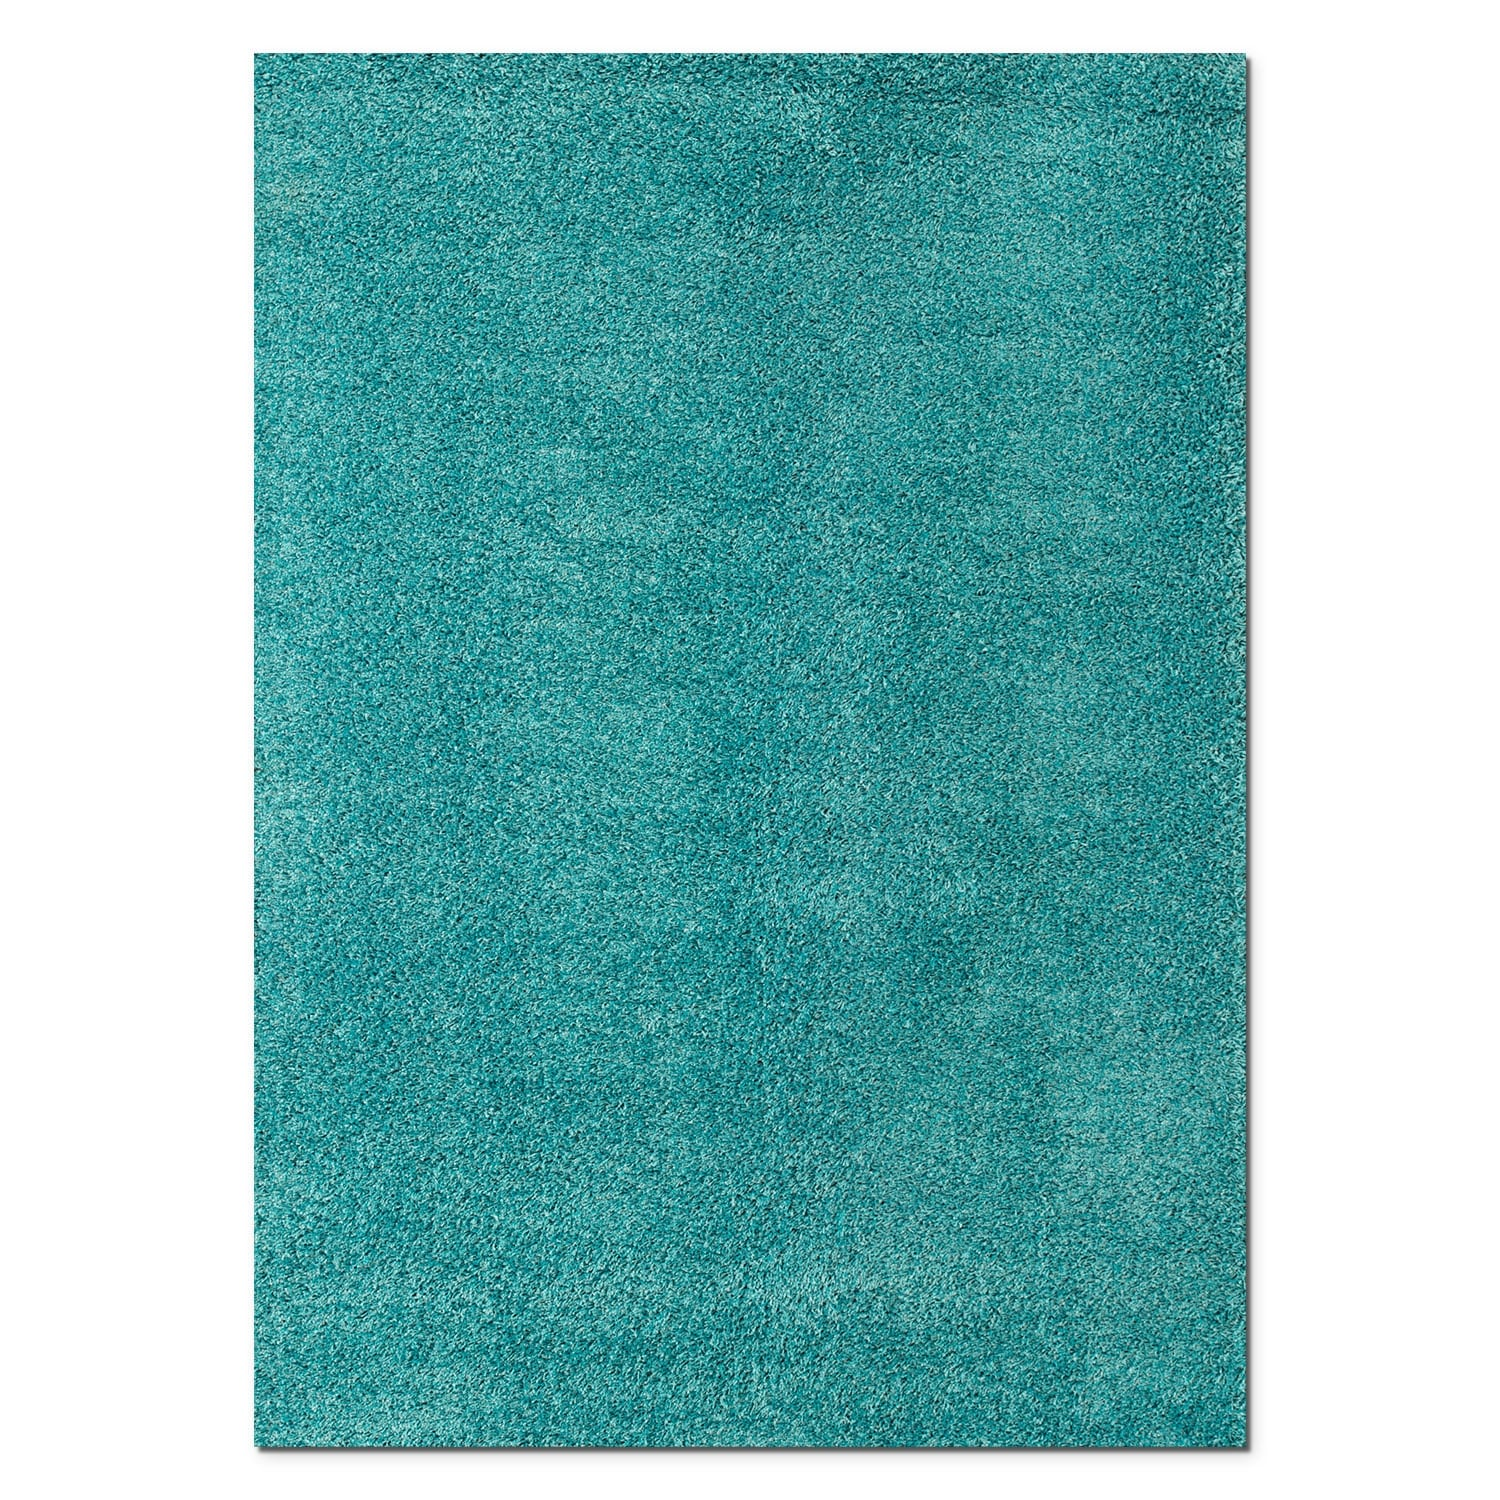 Rugs - Domino Turquoise Shag Area Rug (5' x 8')